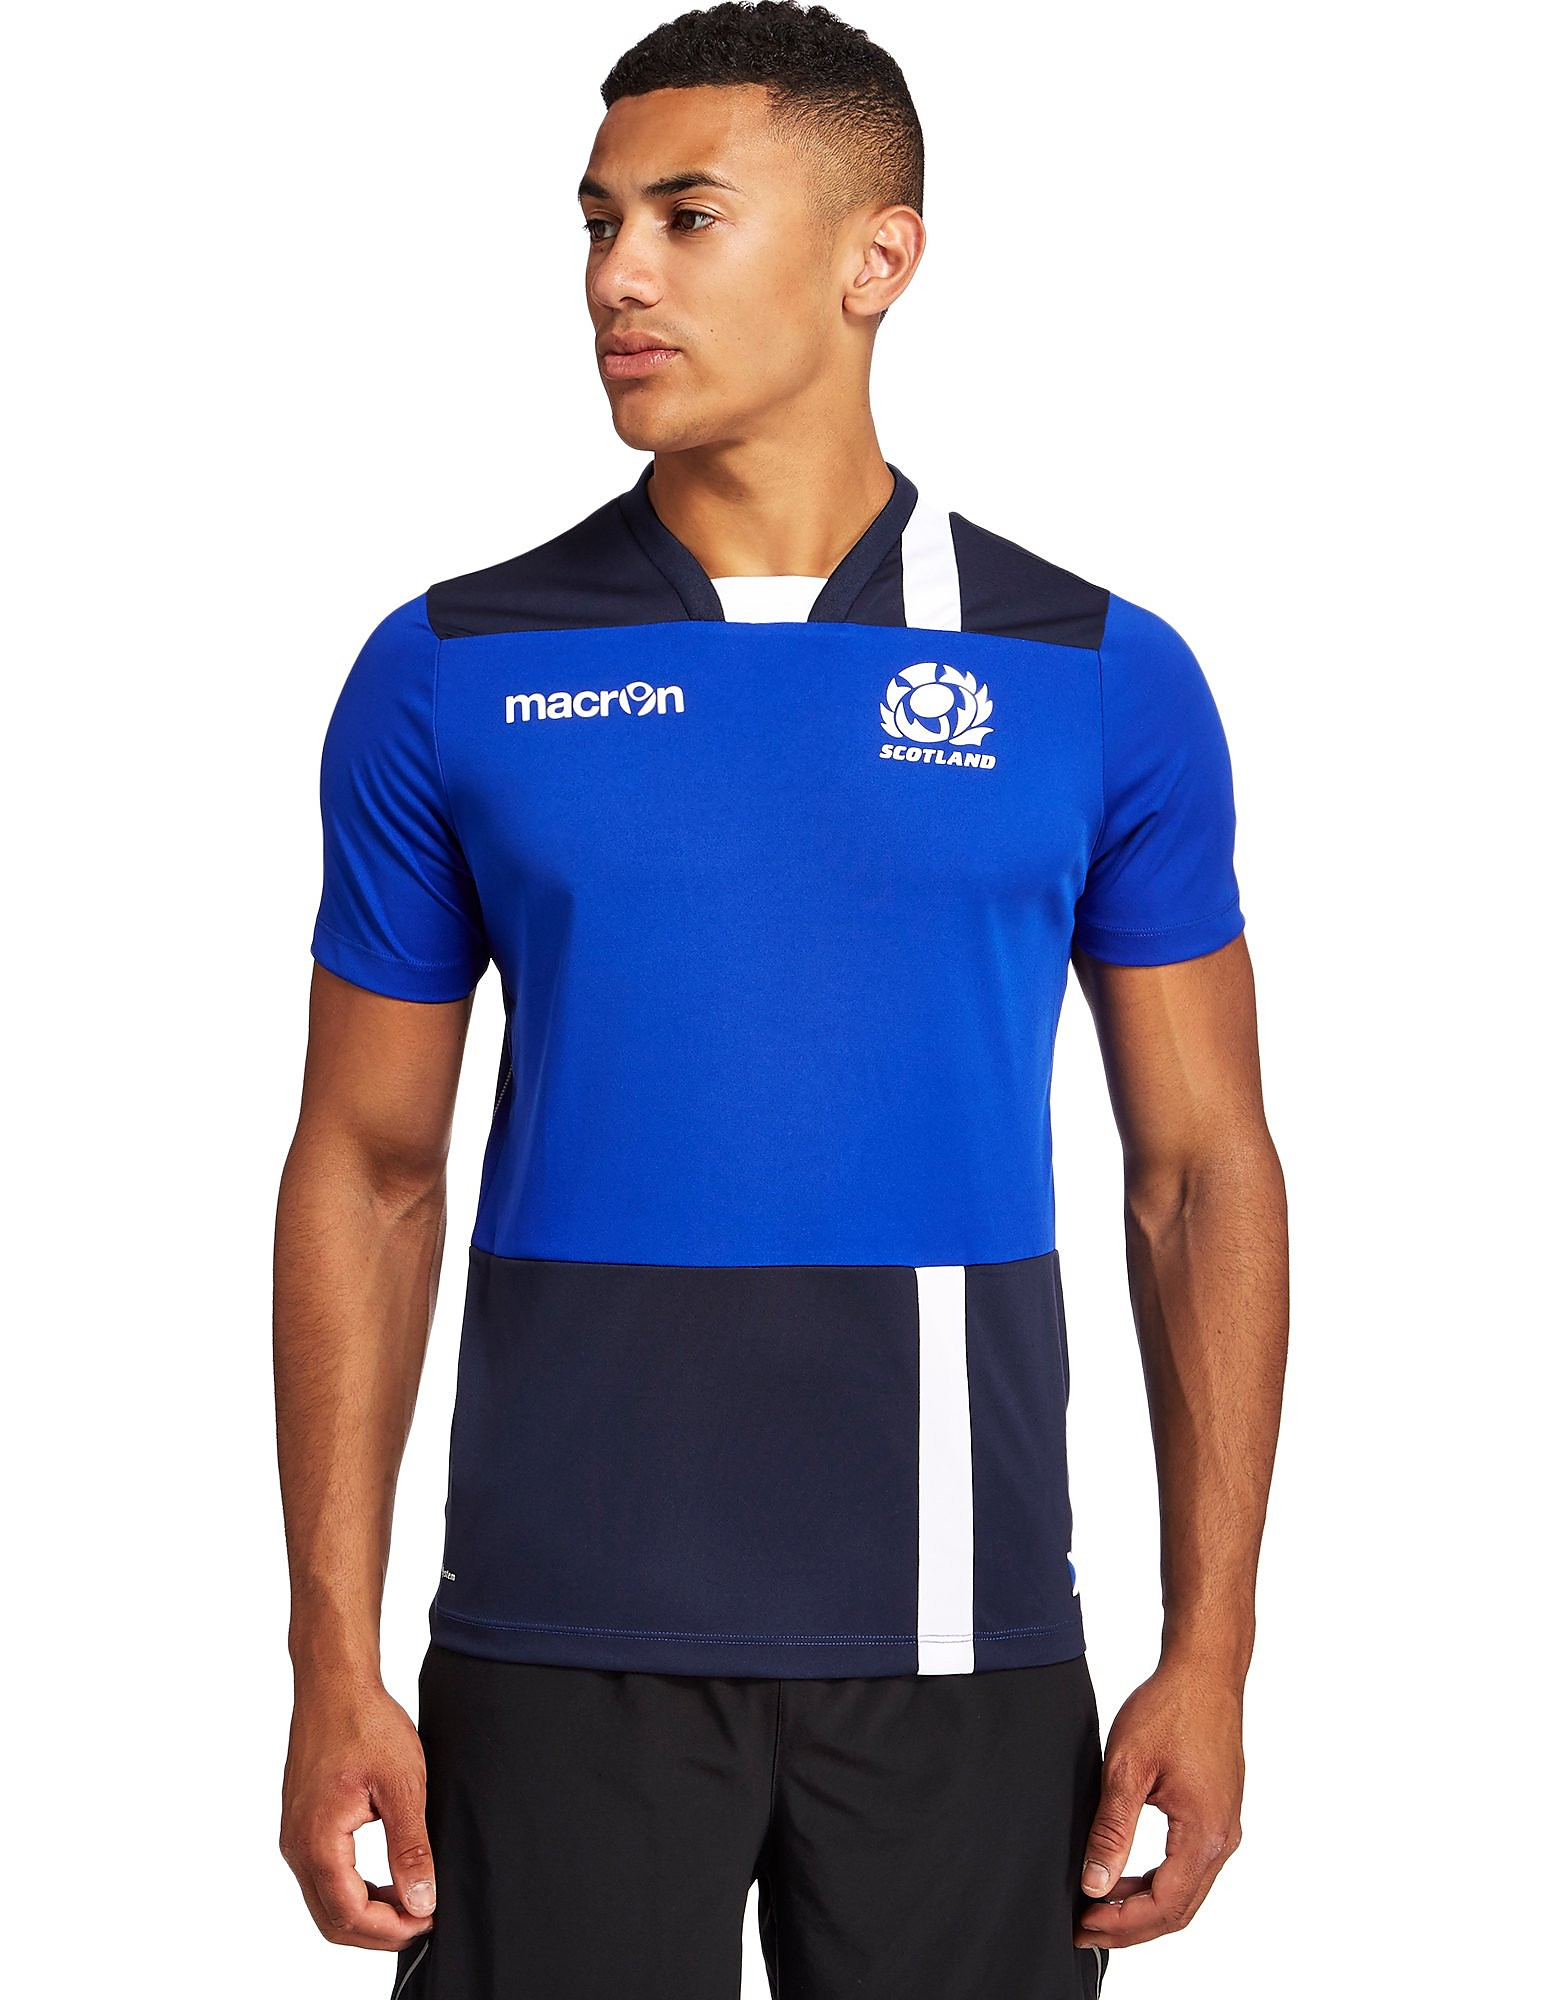 Macron Scotland Poly Shirt